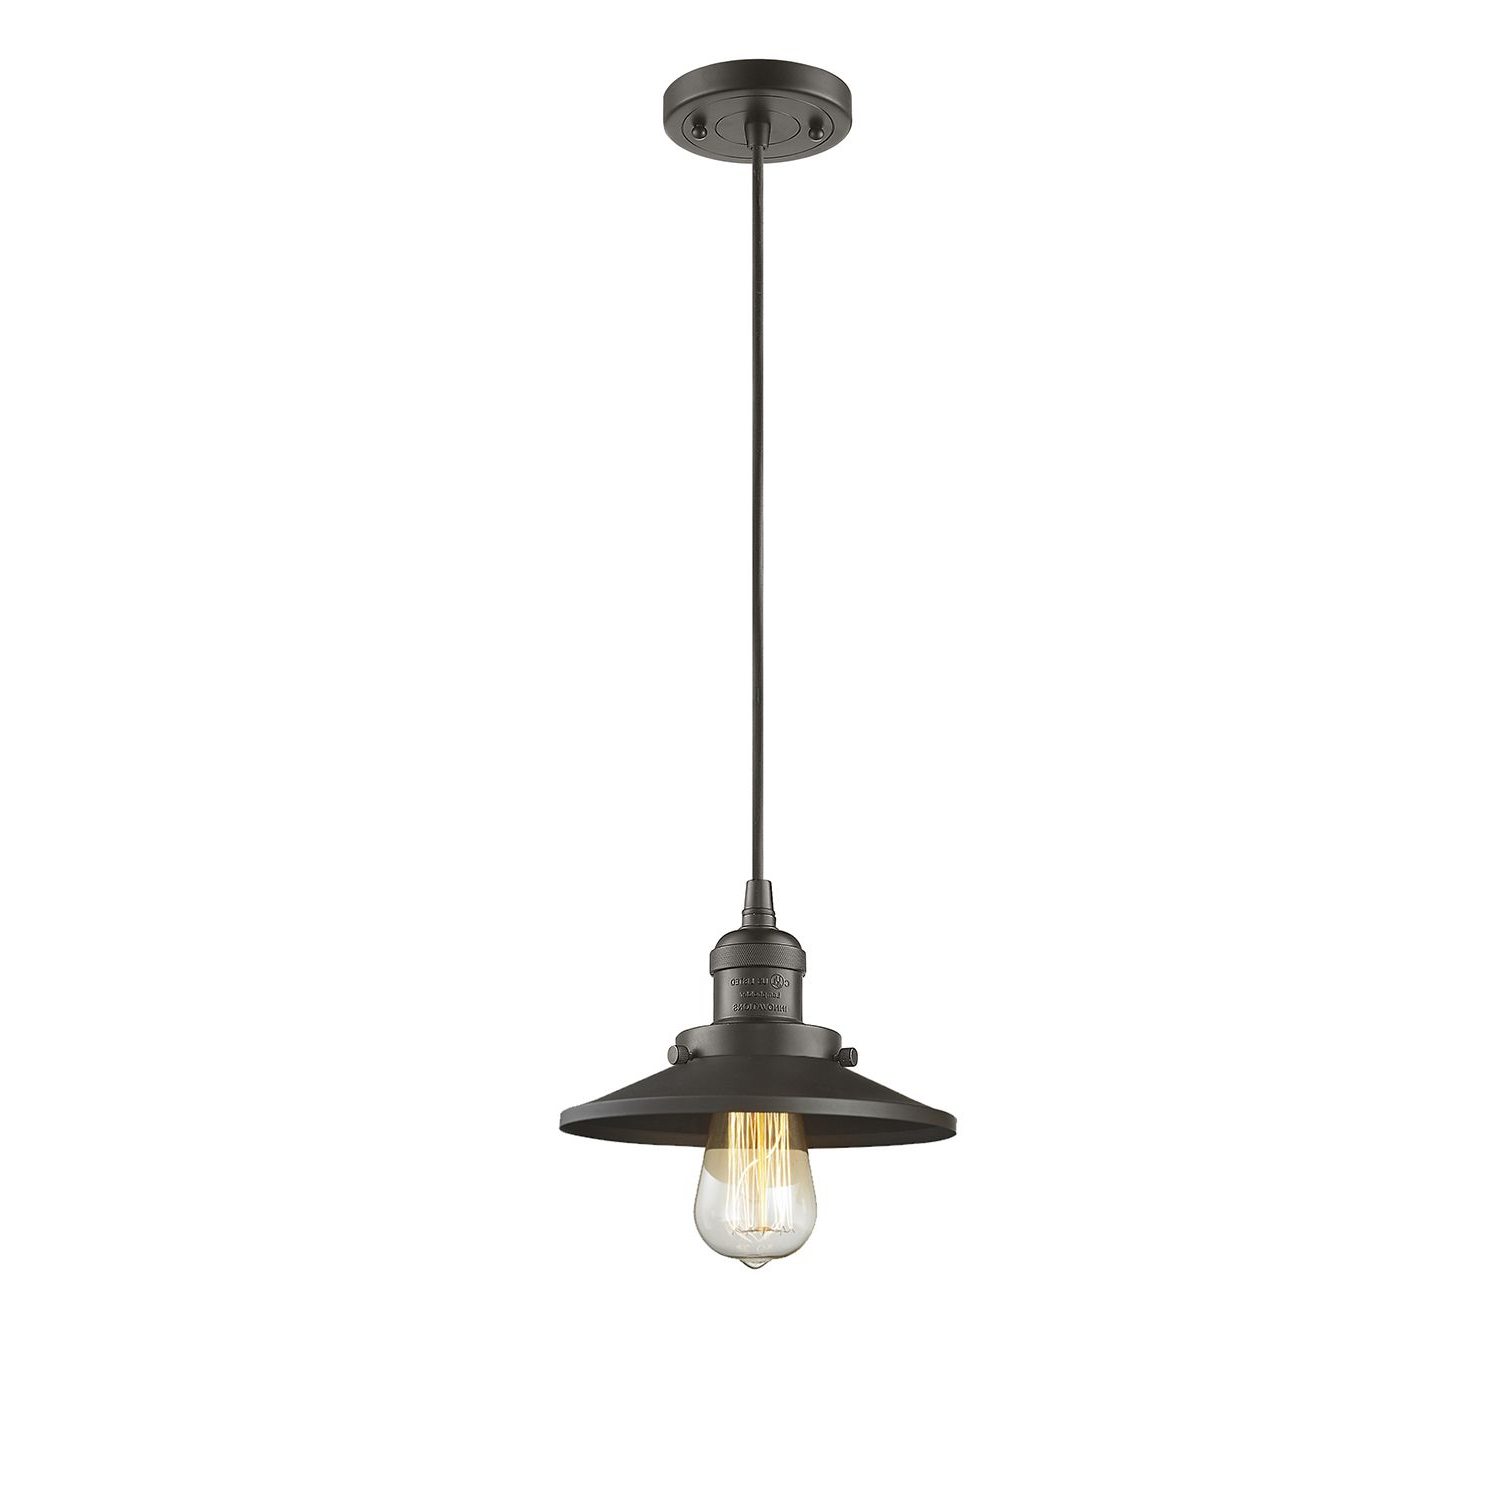 Innovations Lighting Railroad Oiled Rubbed Bronze Eight Inch Intended For Trendy Nadine 1 Light Single Schoolhouse Pendants (View 5 of 20)